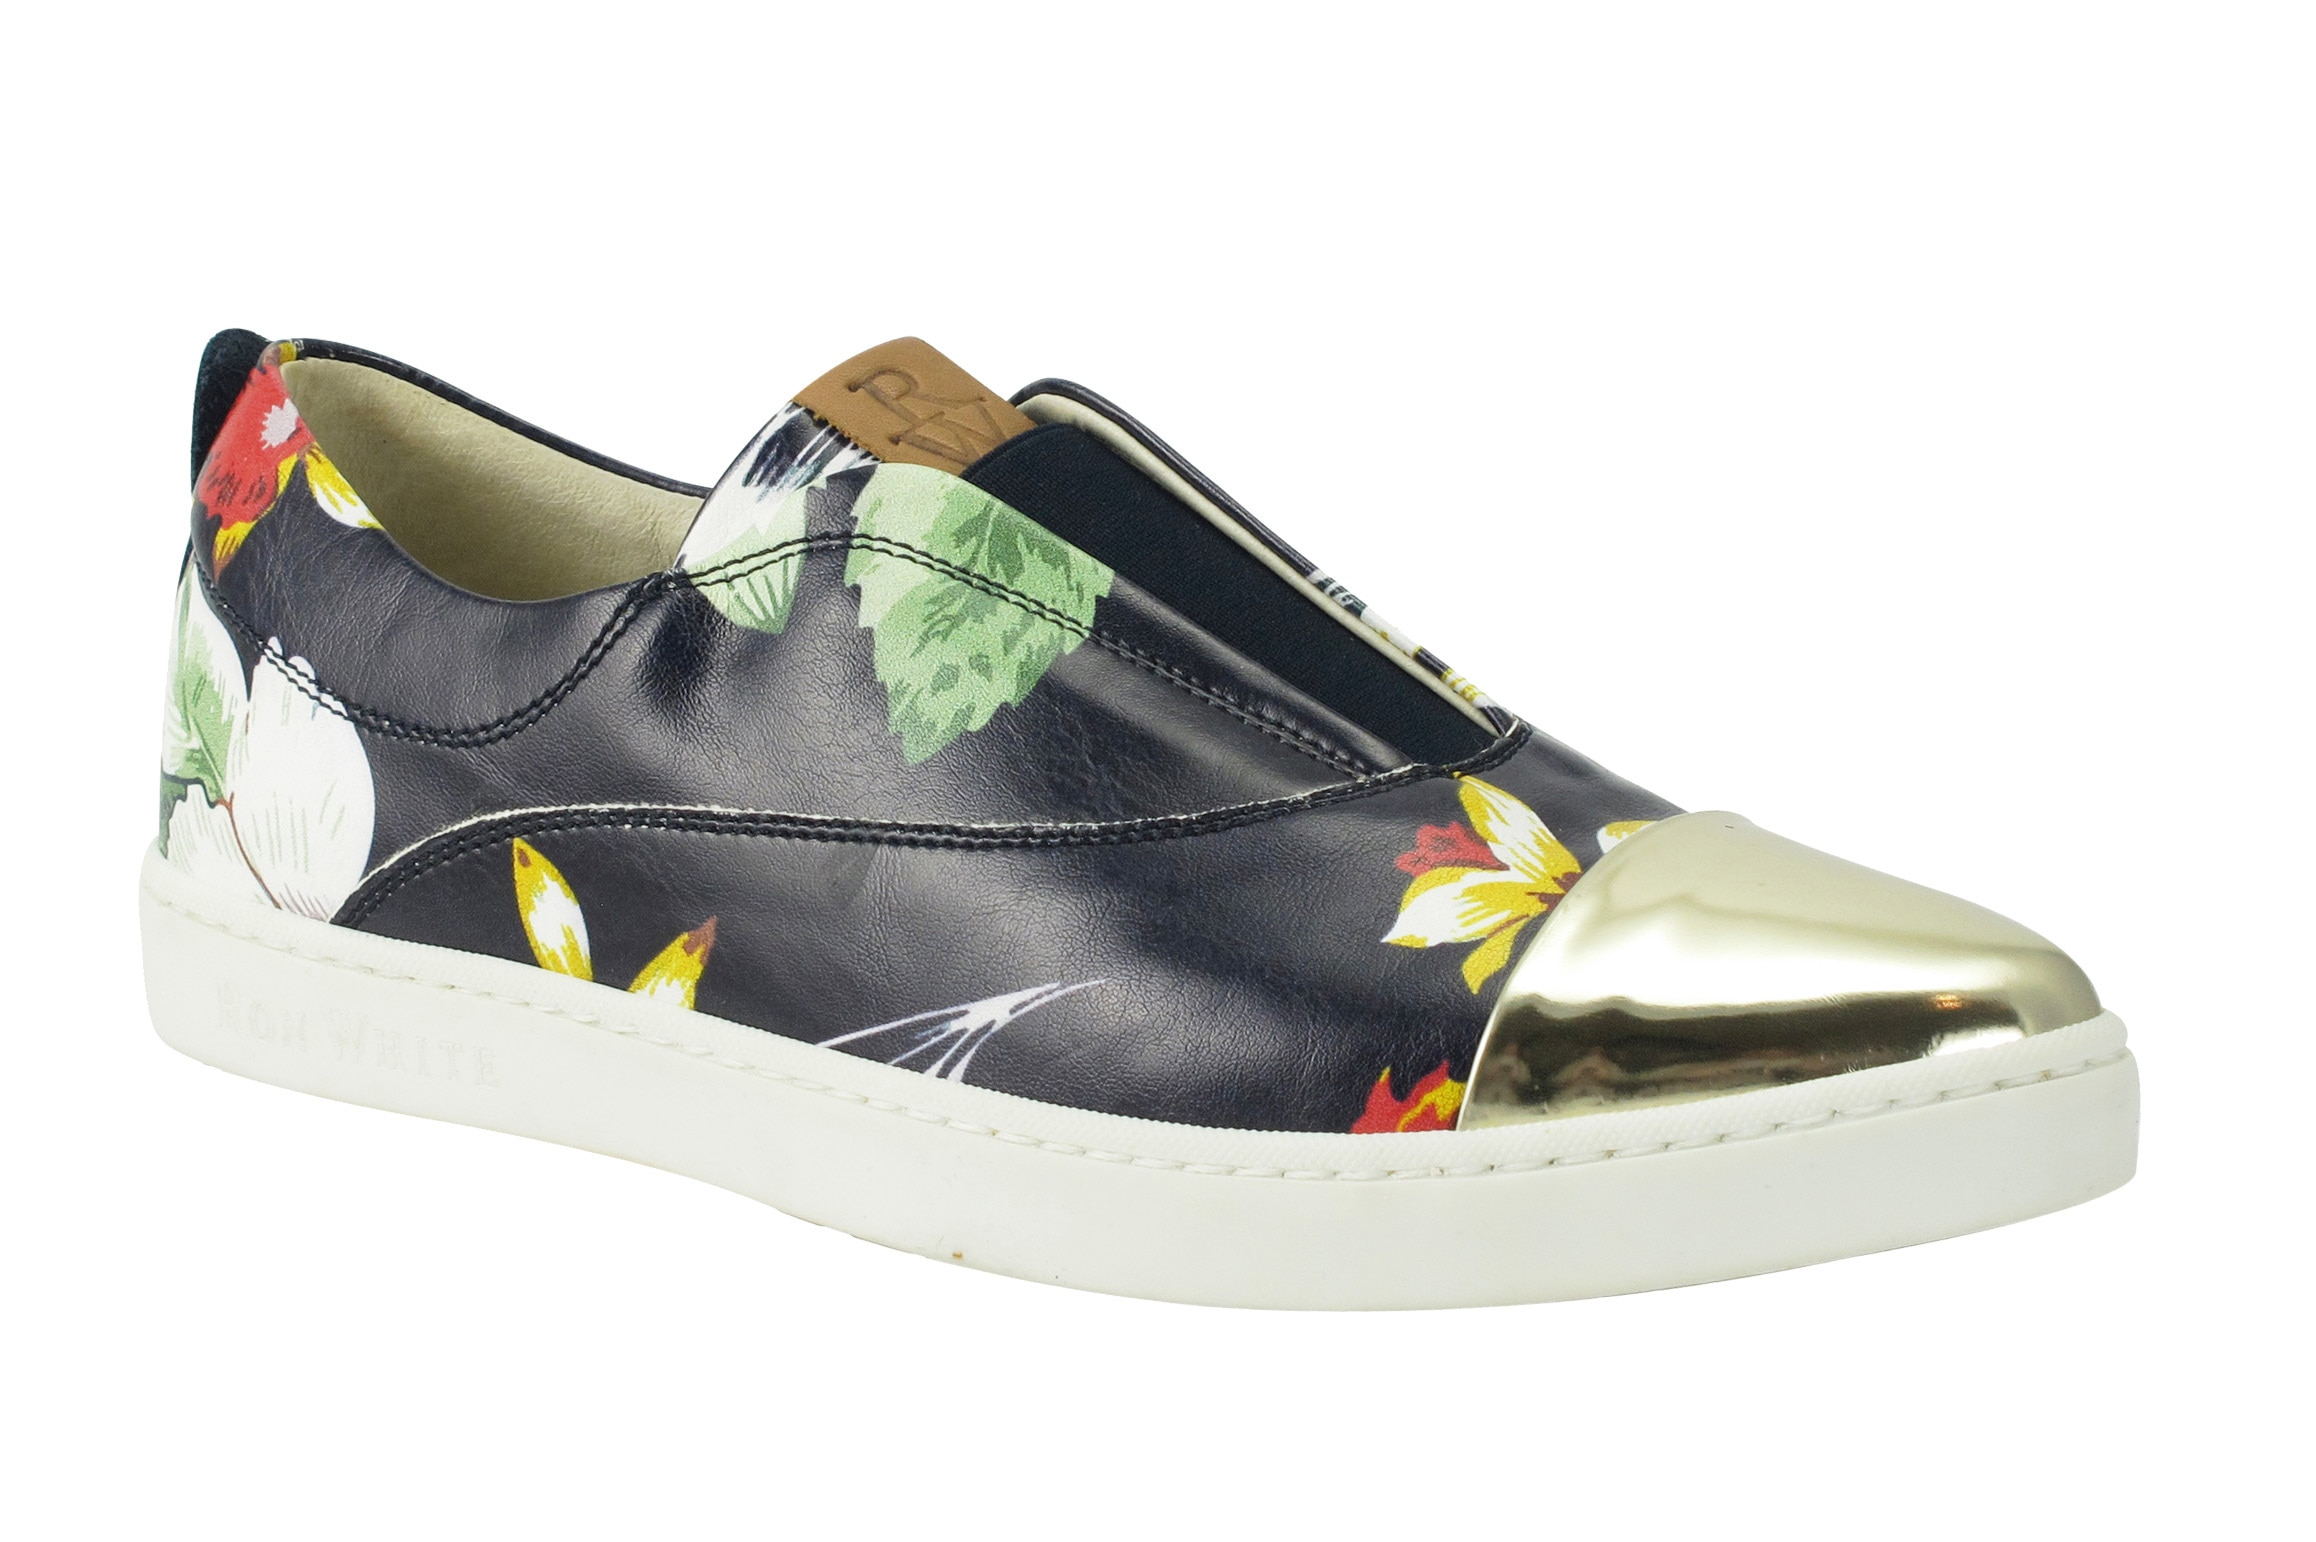 Buy Ron White Samara Floral Printed Sneaker - Shoes & Handbags - Women's  Shoes - Sneakers - Online Shopping for Canadians